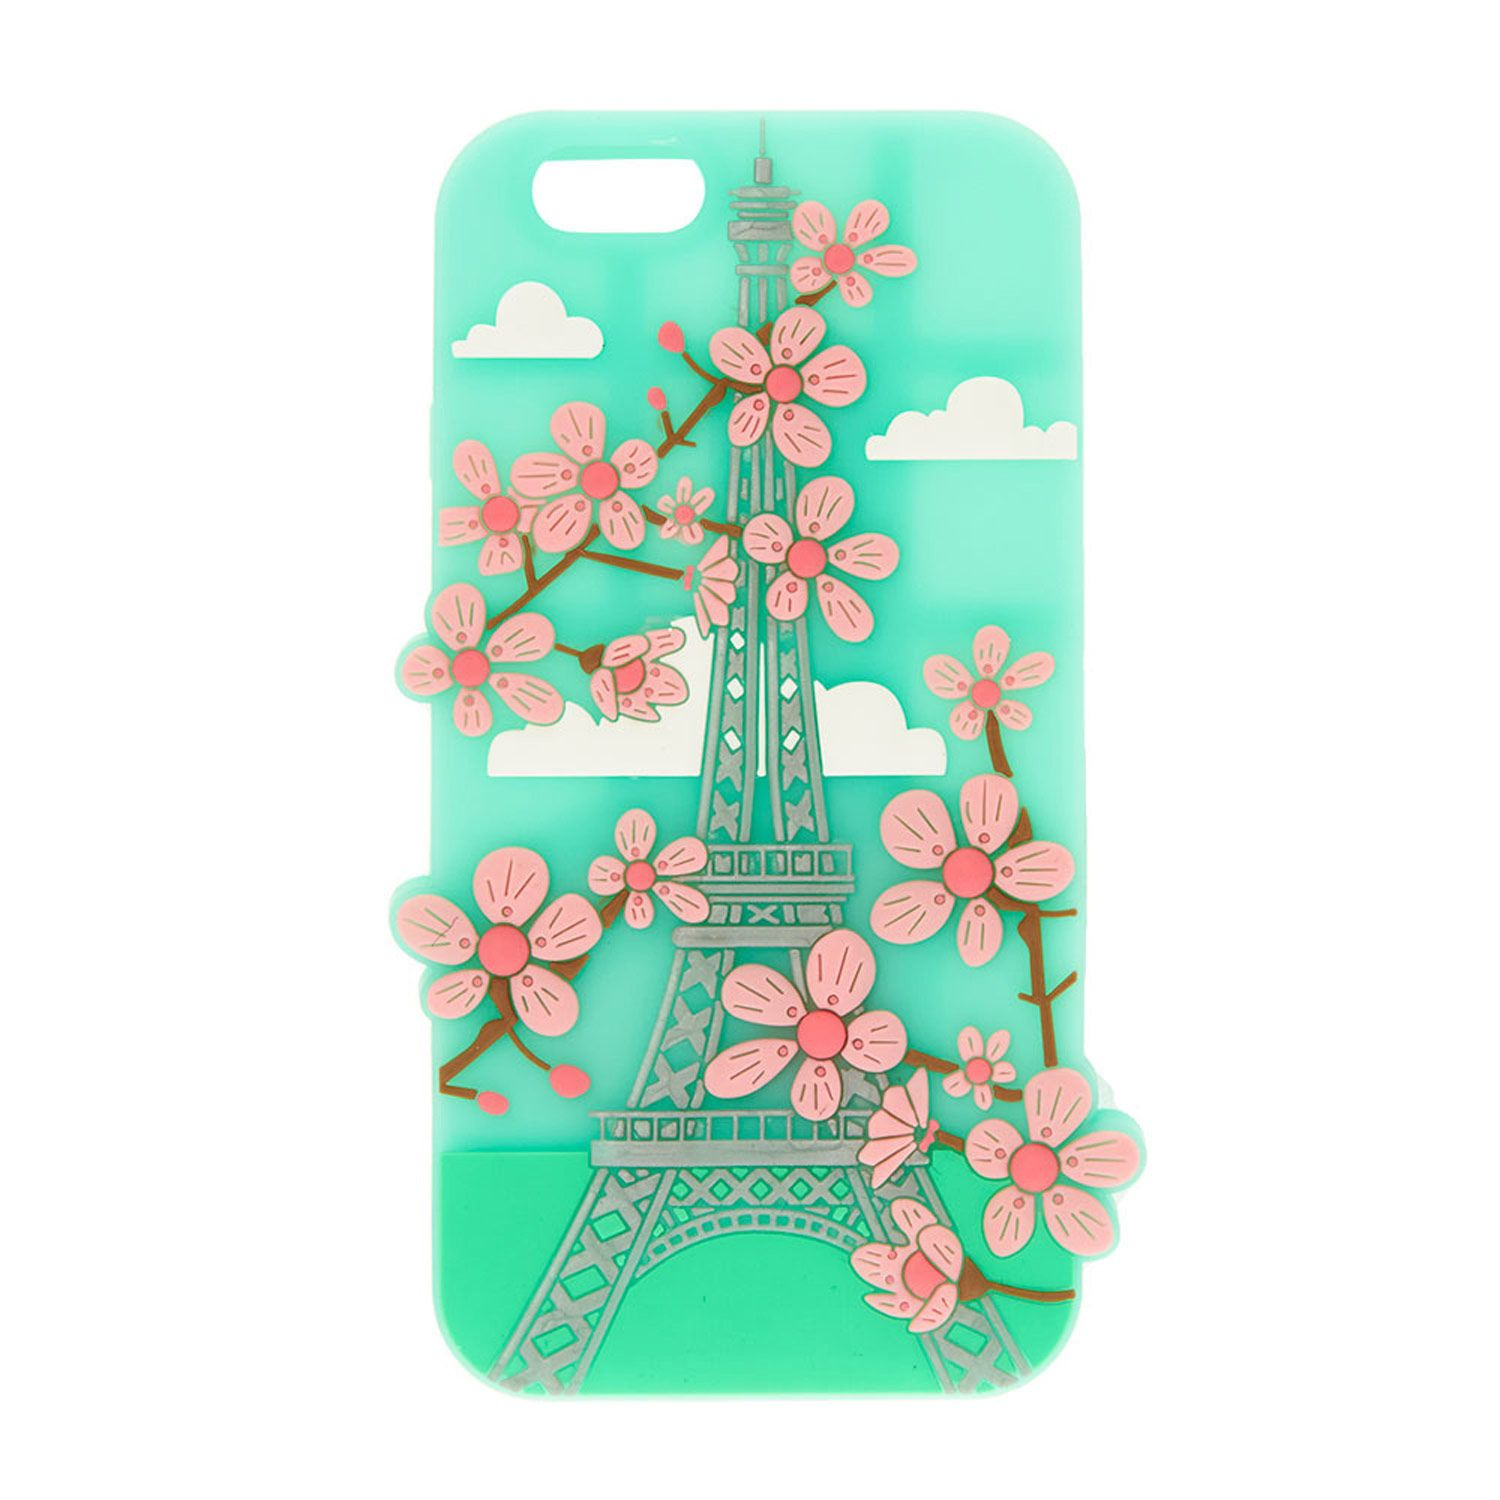 give your diys phone neon case decorate decor diy these makeover with stud a customize cases